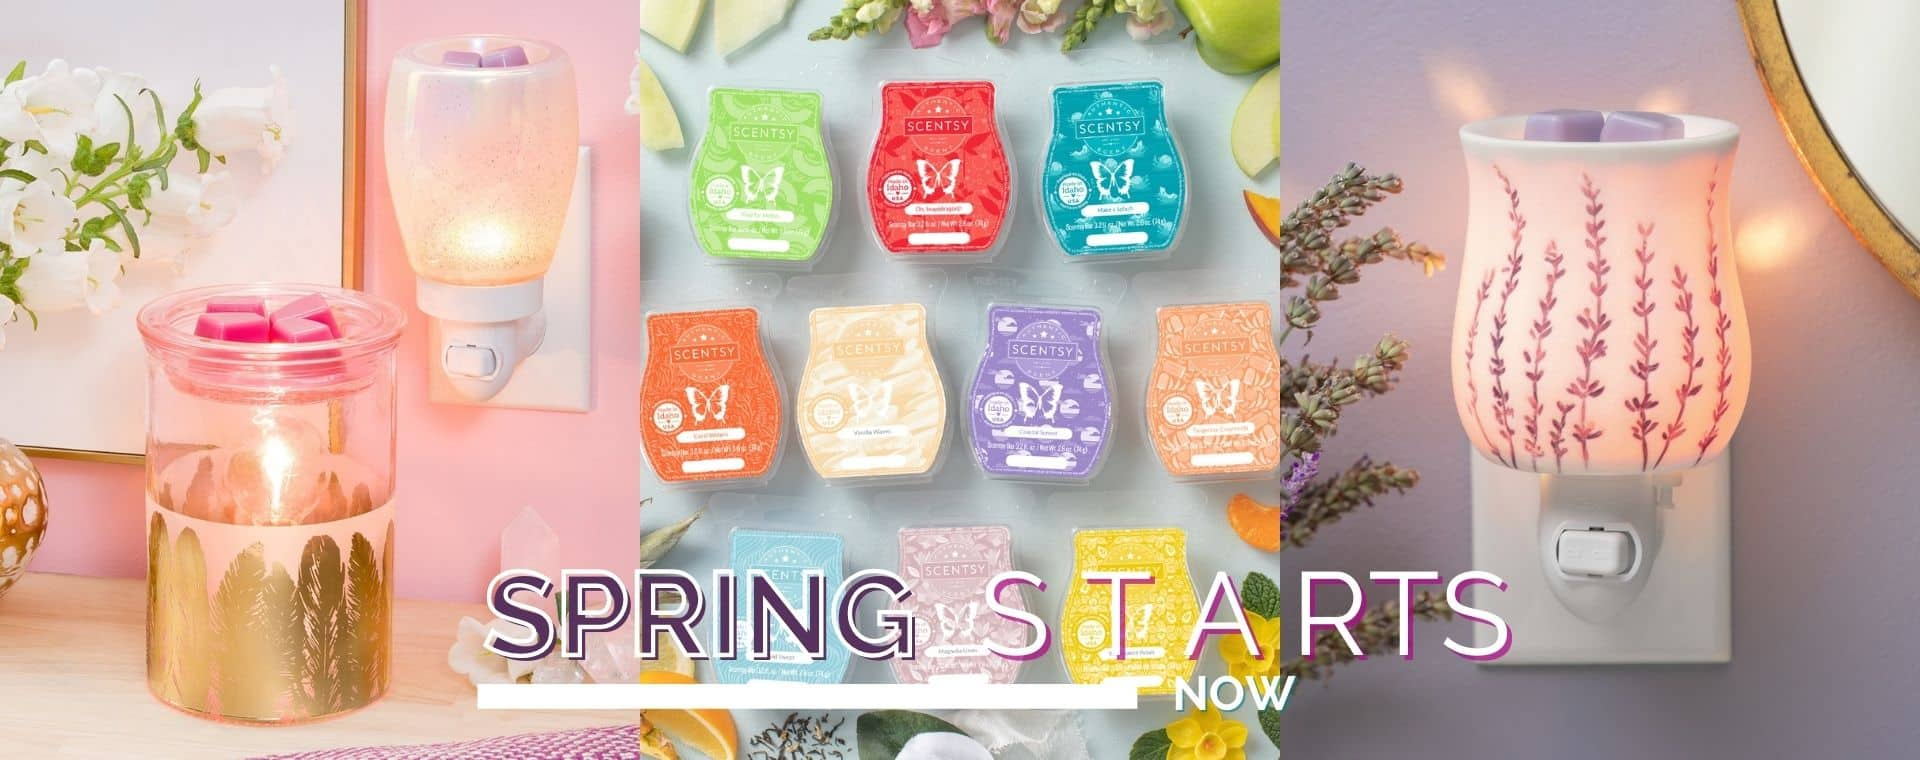 SCENTSY SPRING 2021 STARTS NOW 2